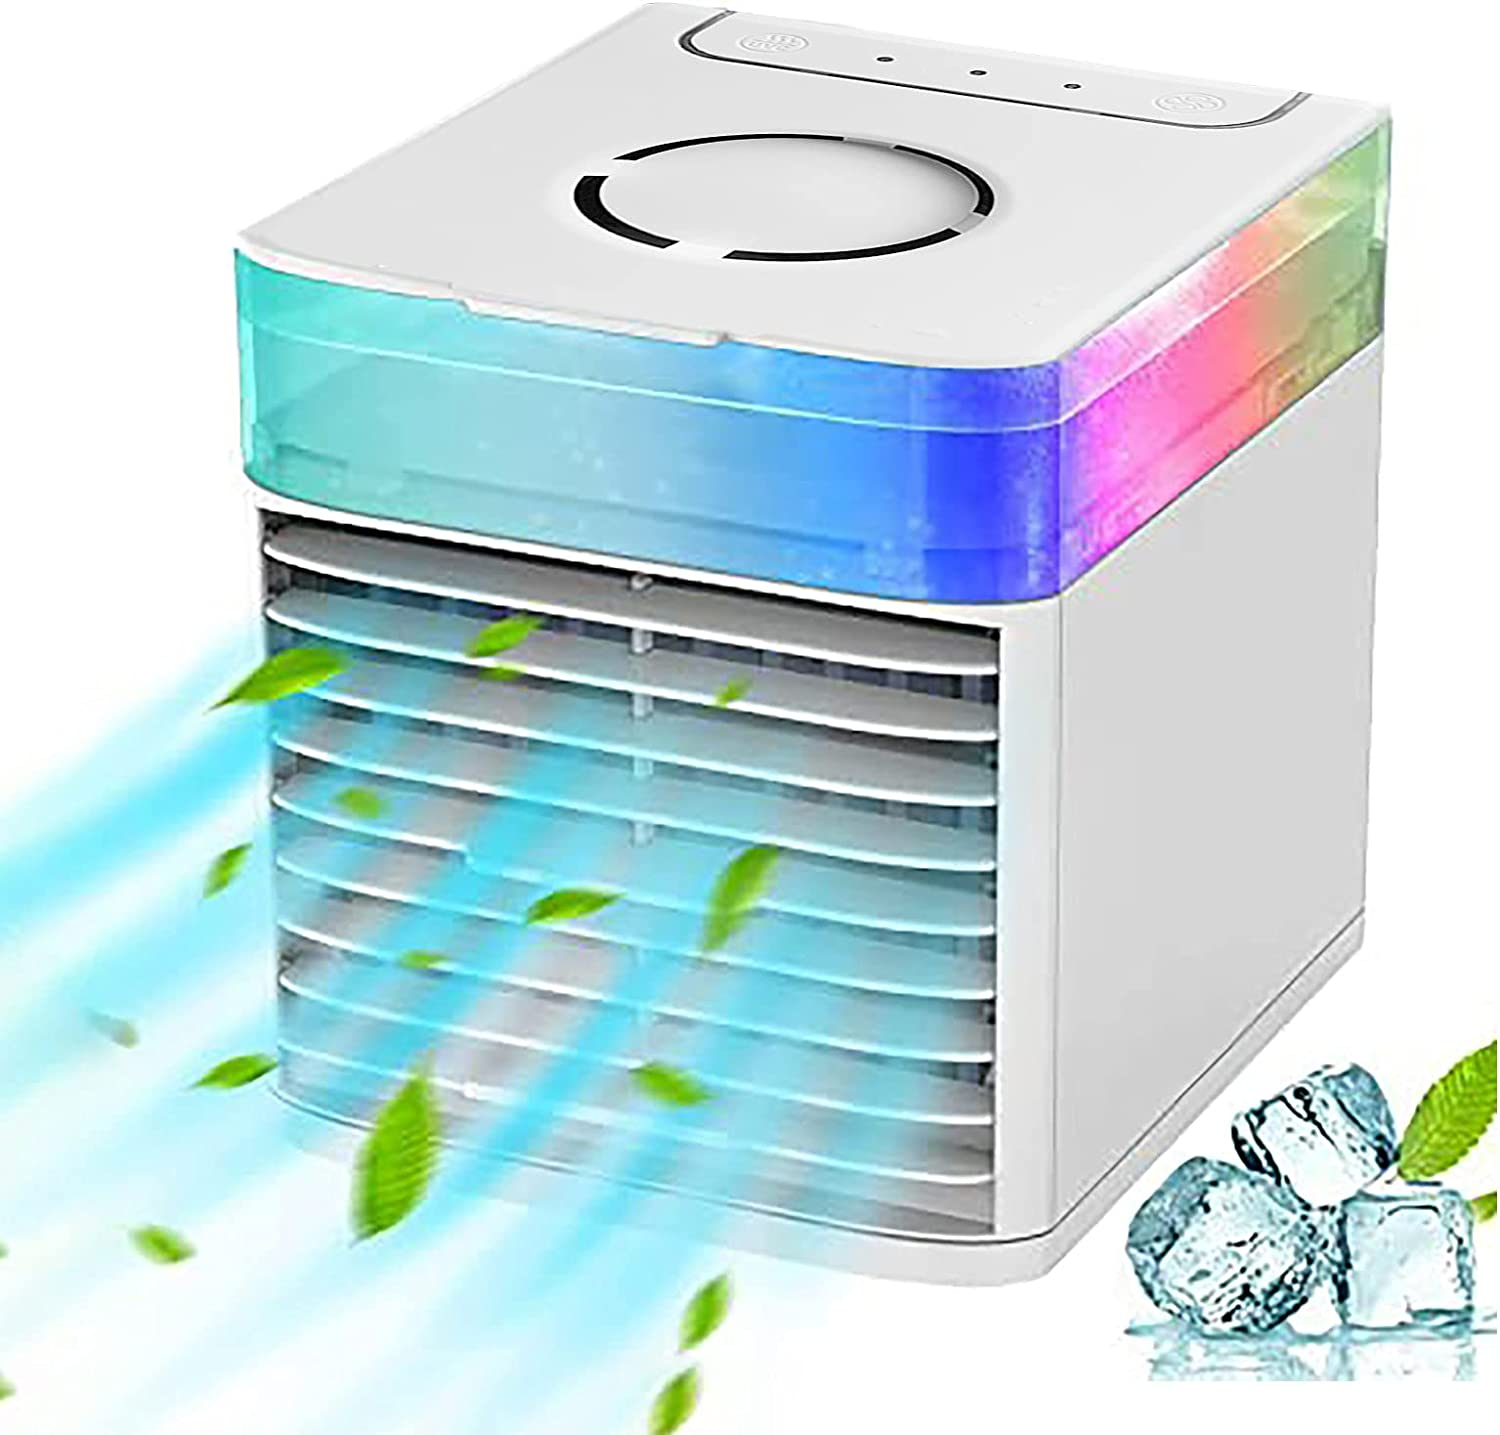 Selling Inverlee Blast Portable AC Ultra Cond - Conditioner Mini lowest price Air